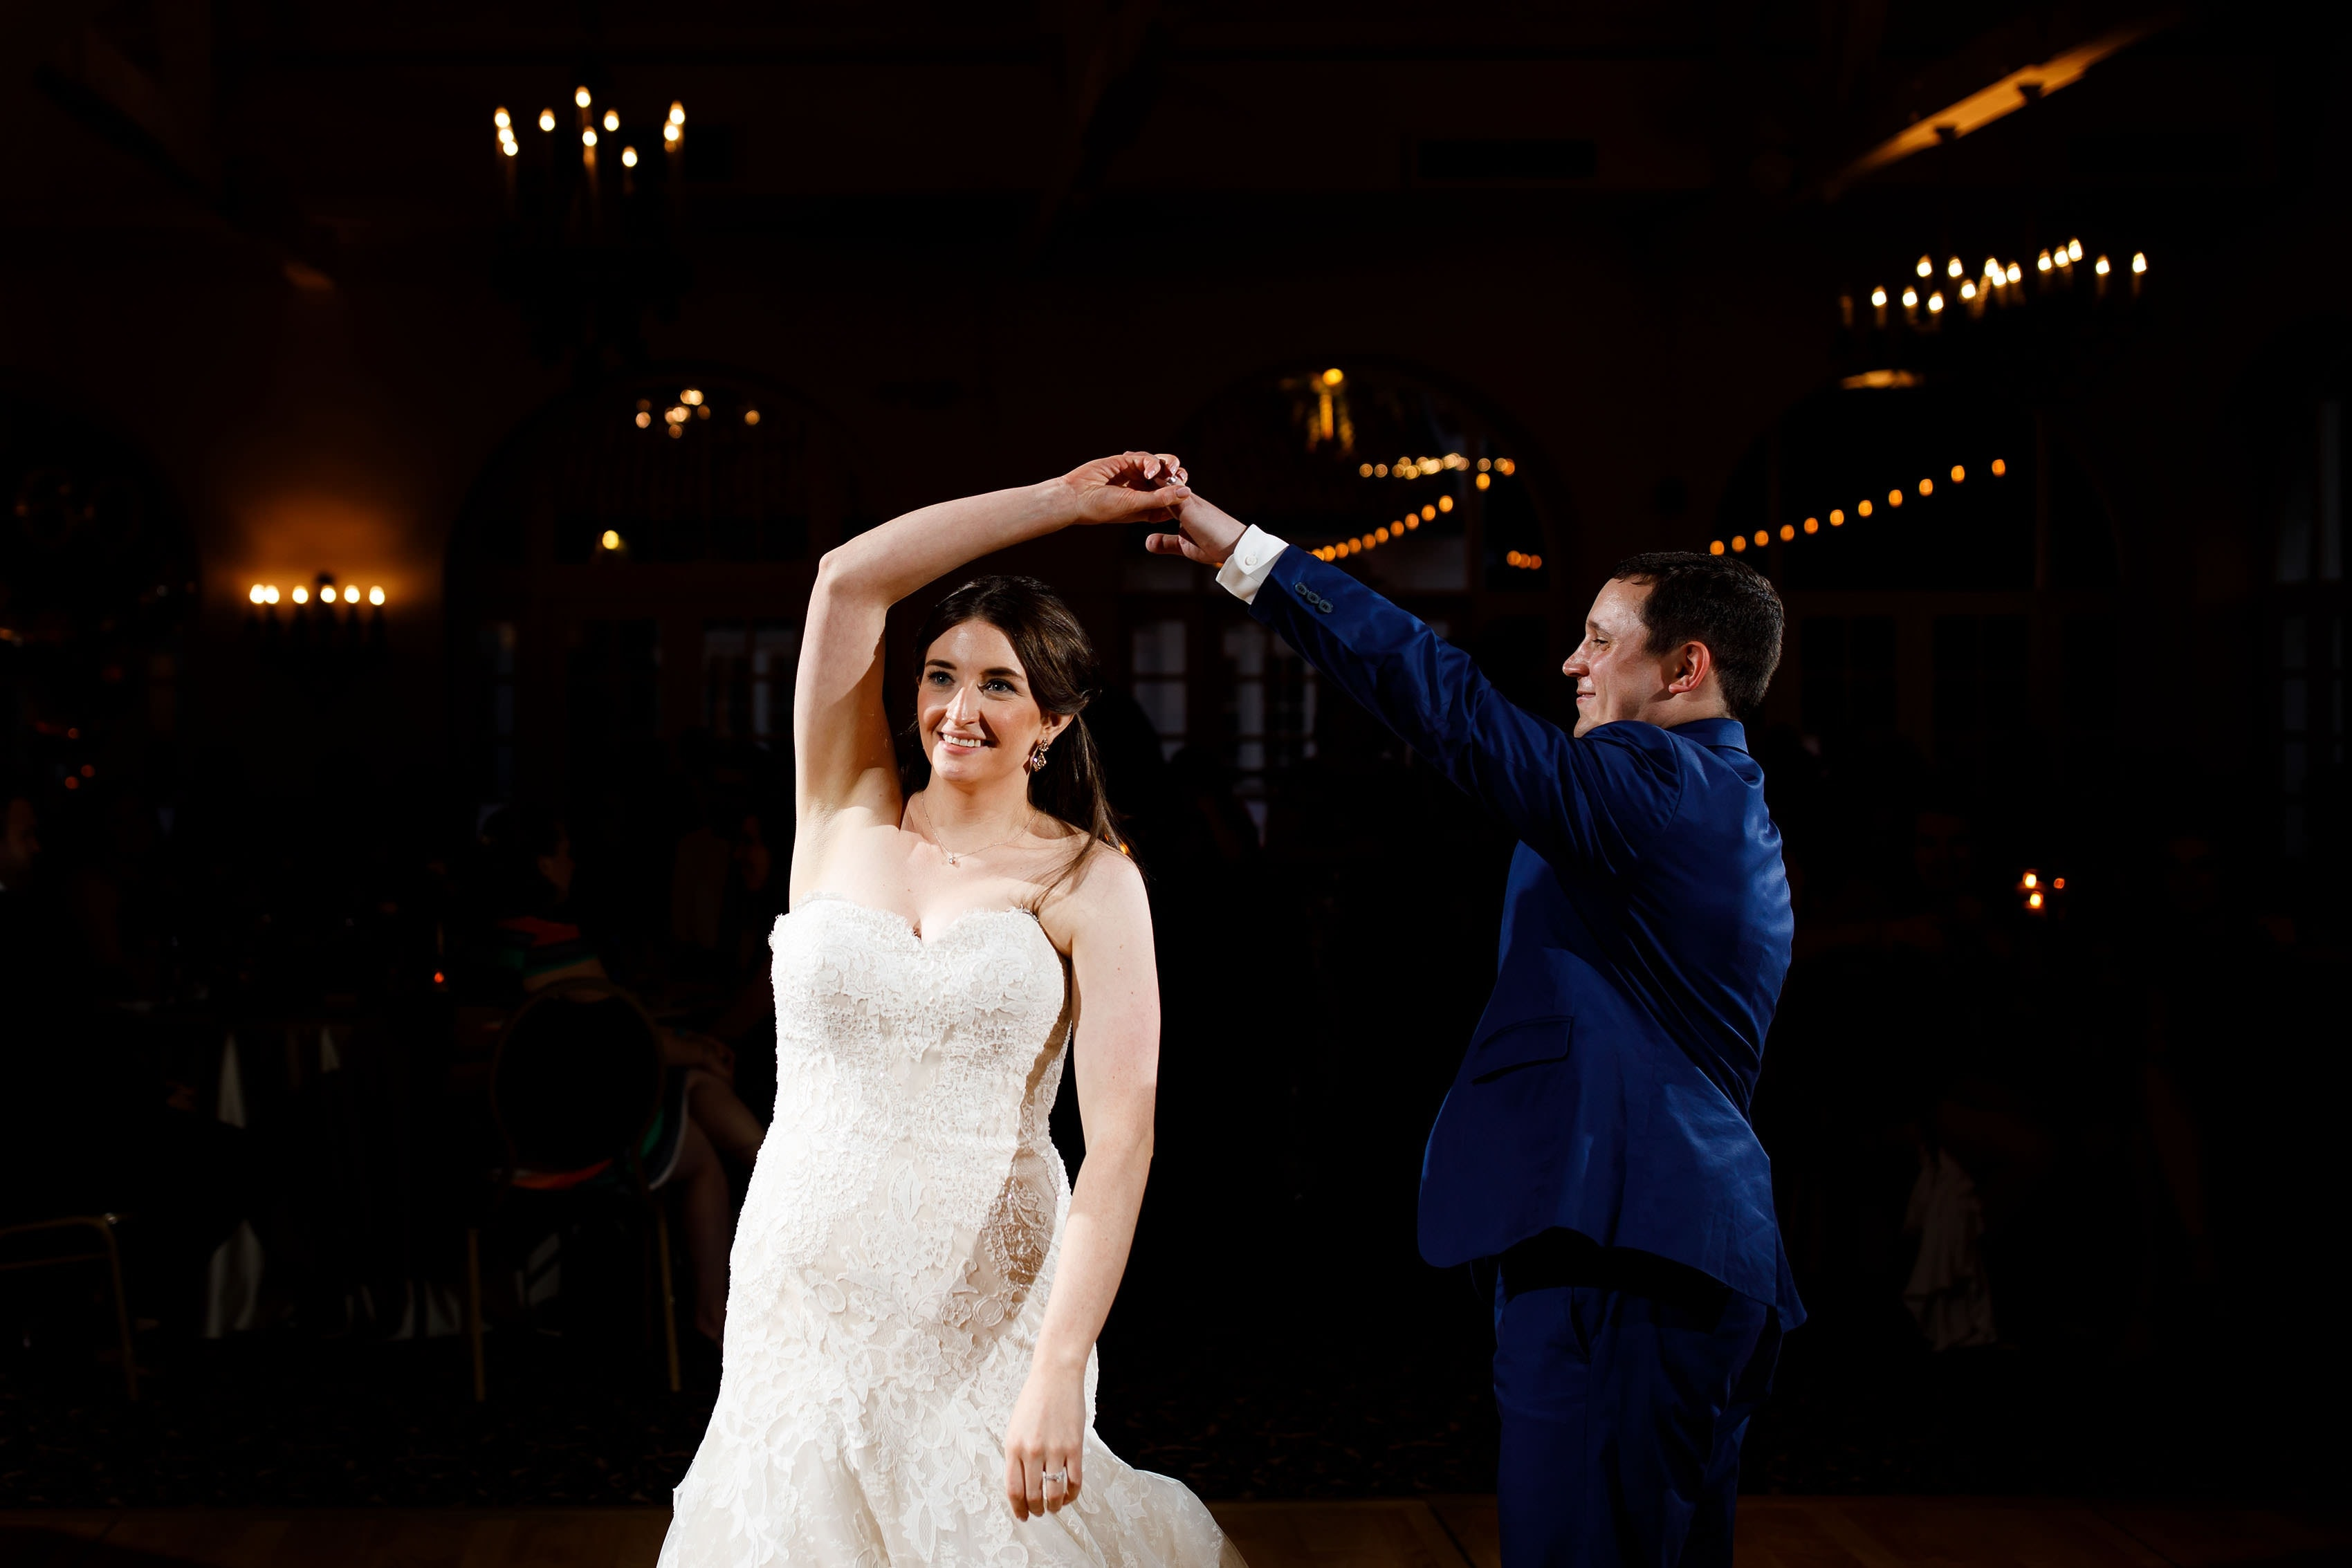 The groom spins the bride during their first dance at Ravisloe Country Club